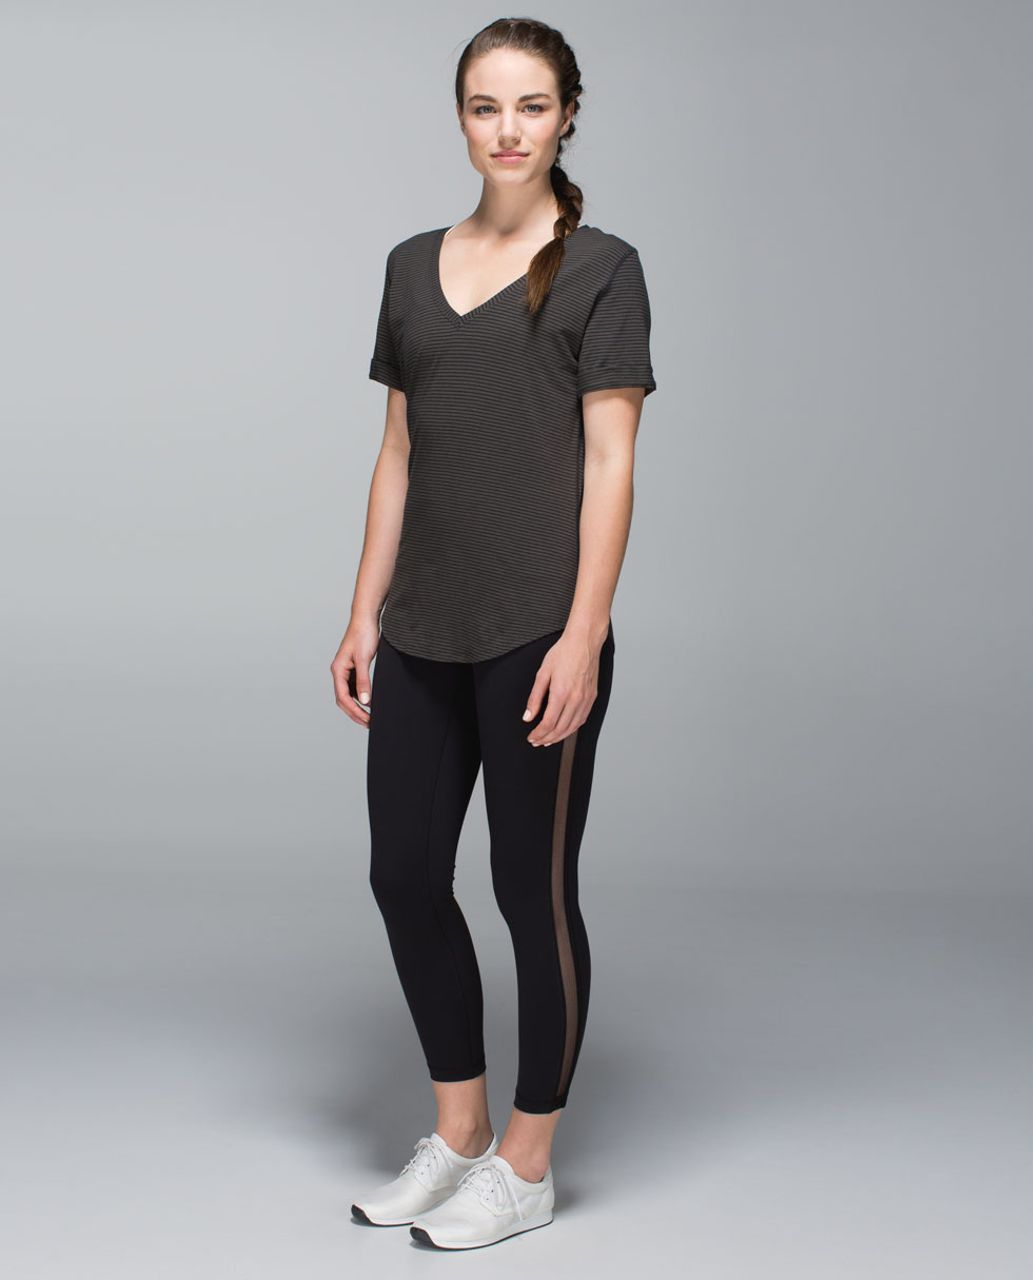 Lululemon Love Tee - Hyper Stripe Deep Camo Black